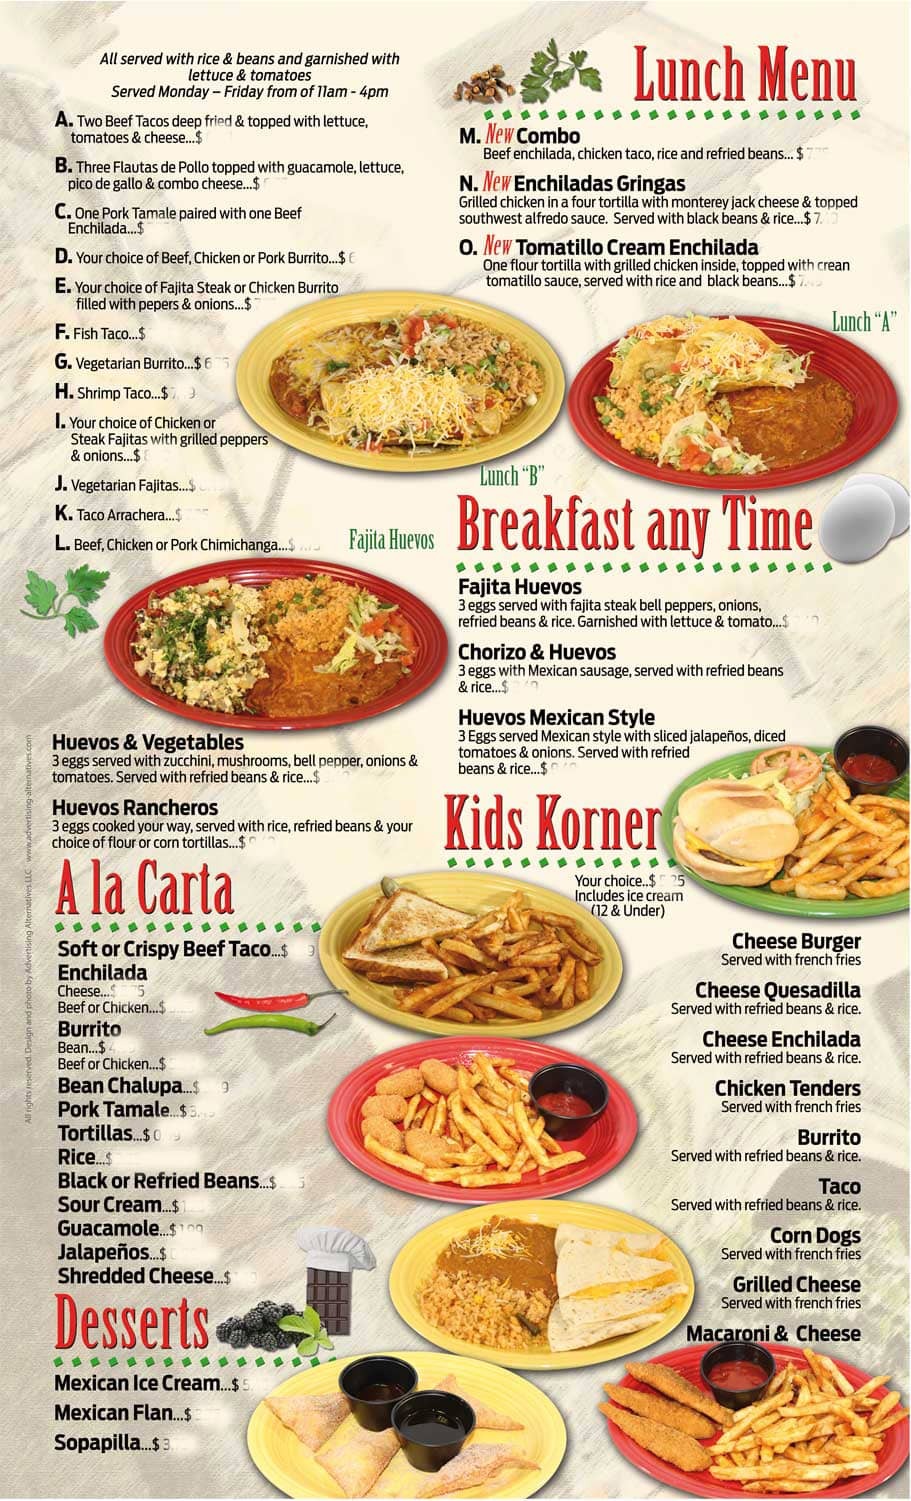 cilantros in omaha's menu